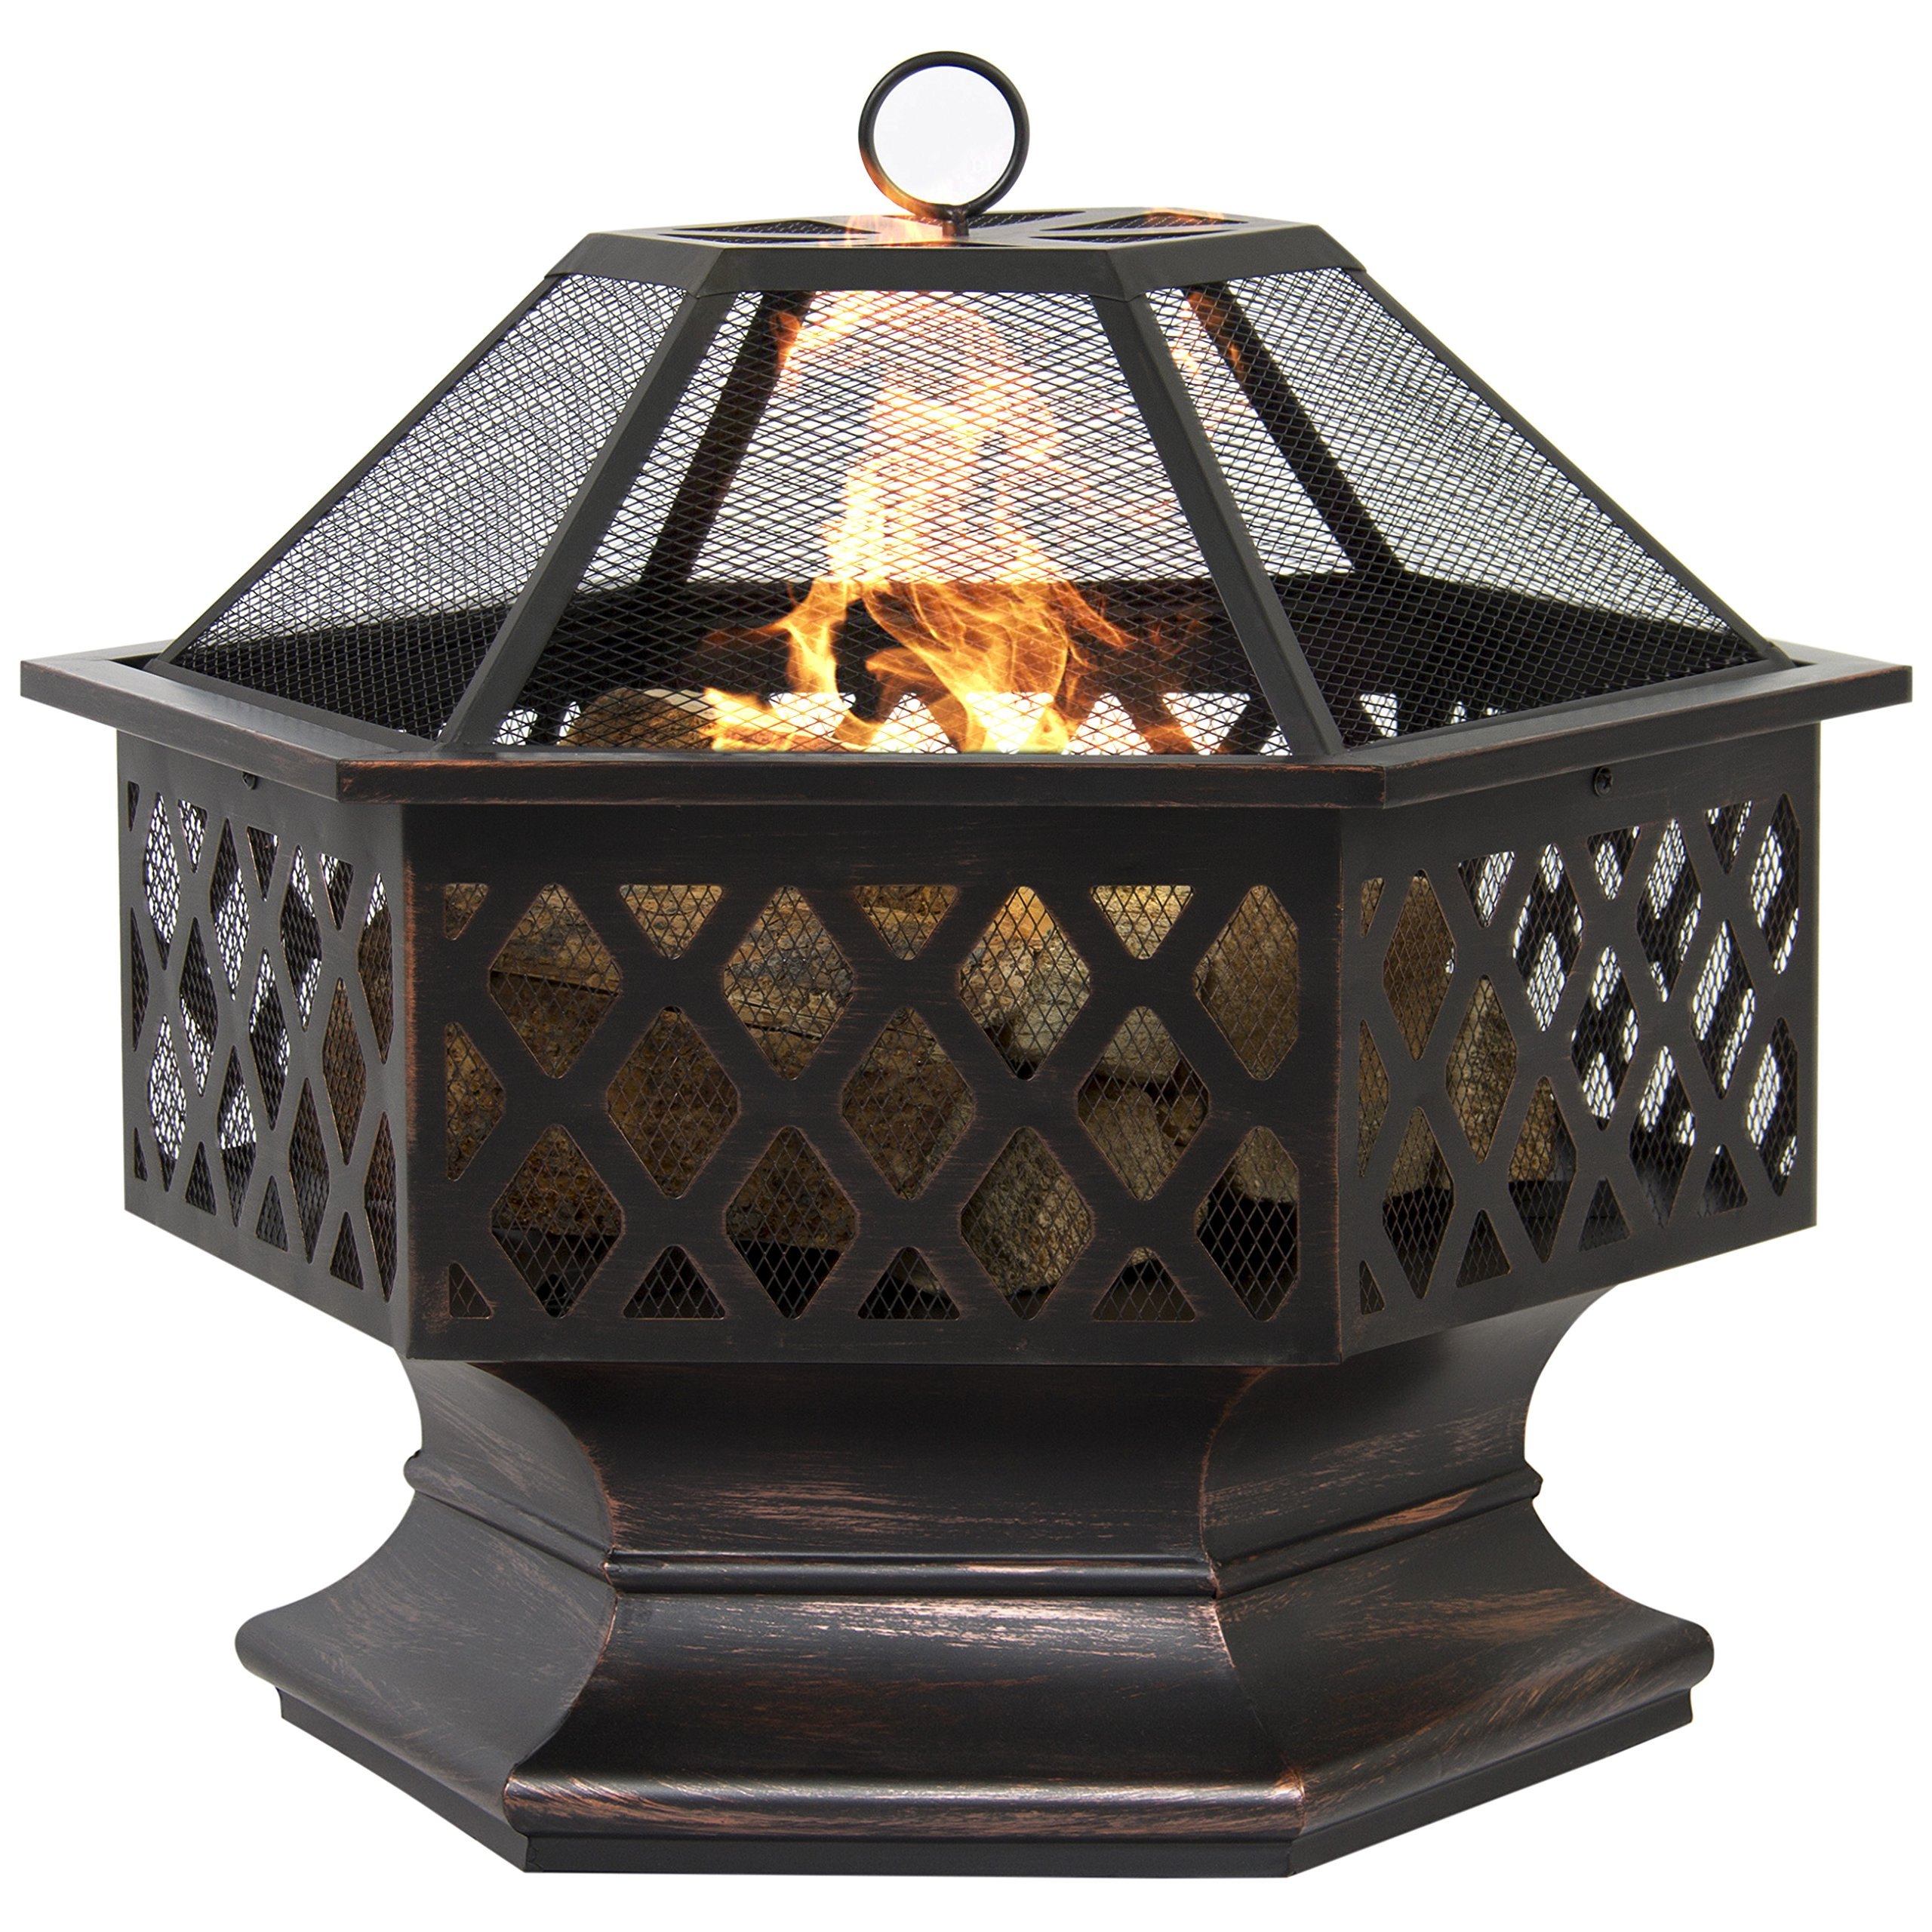 Outdoor Heating Fire Pit Hex Shaped External Home Garden Backyard